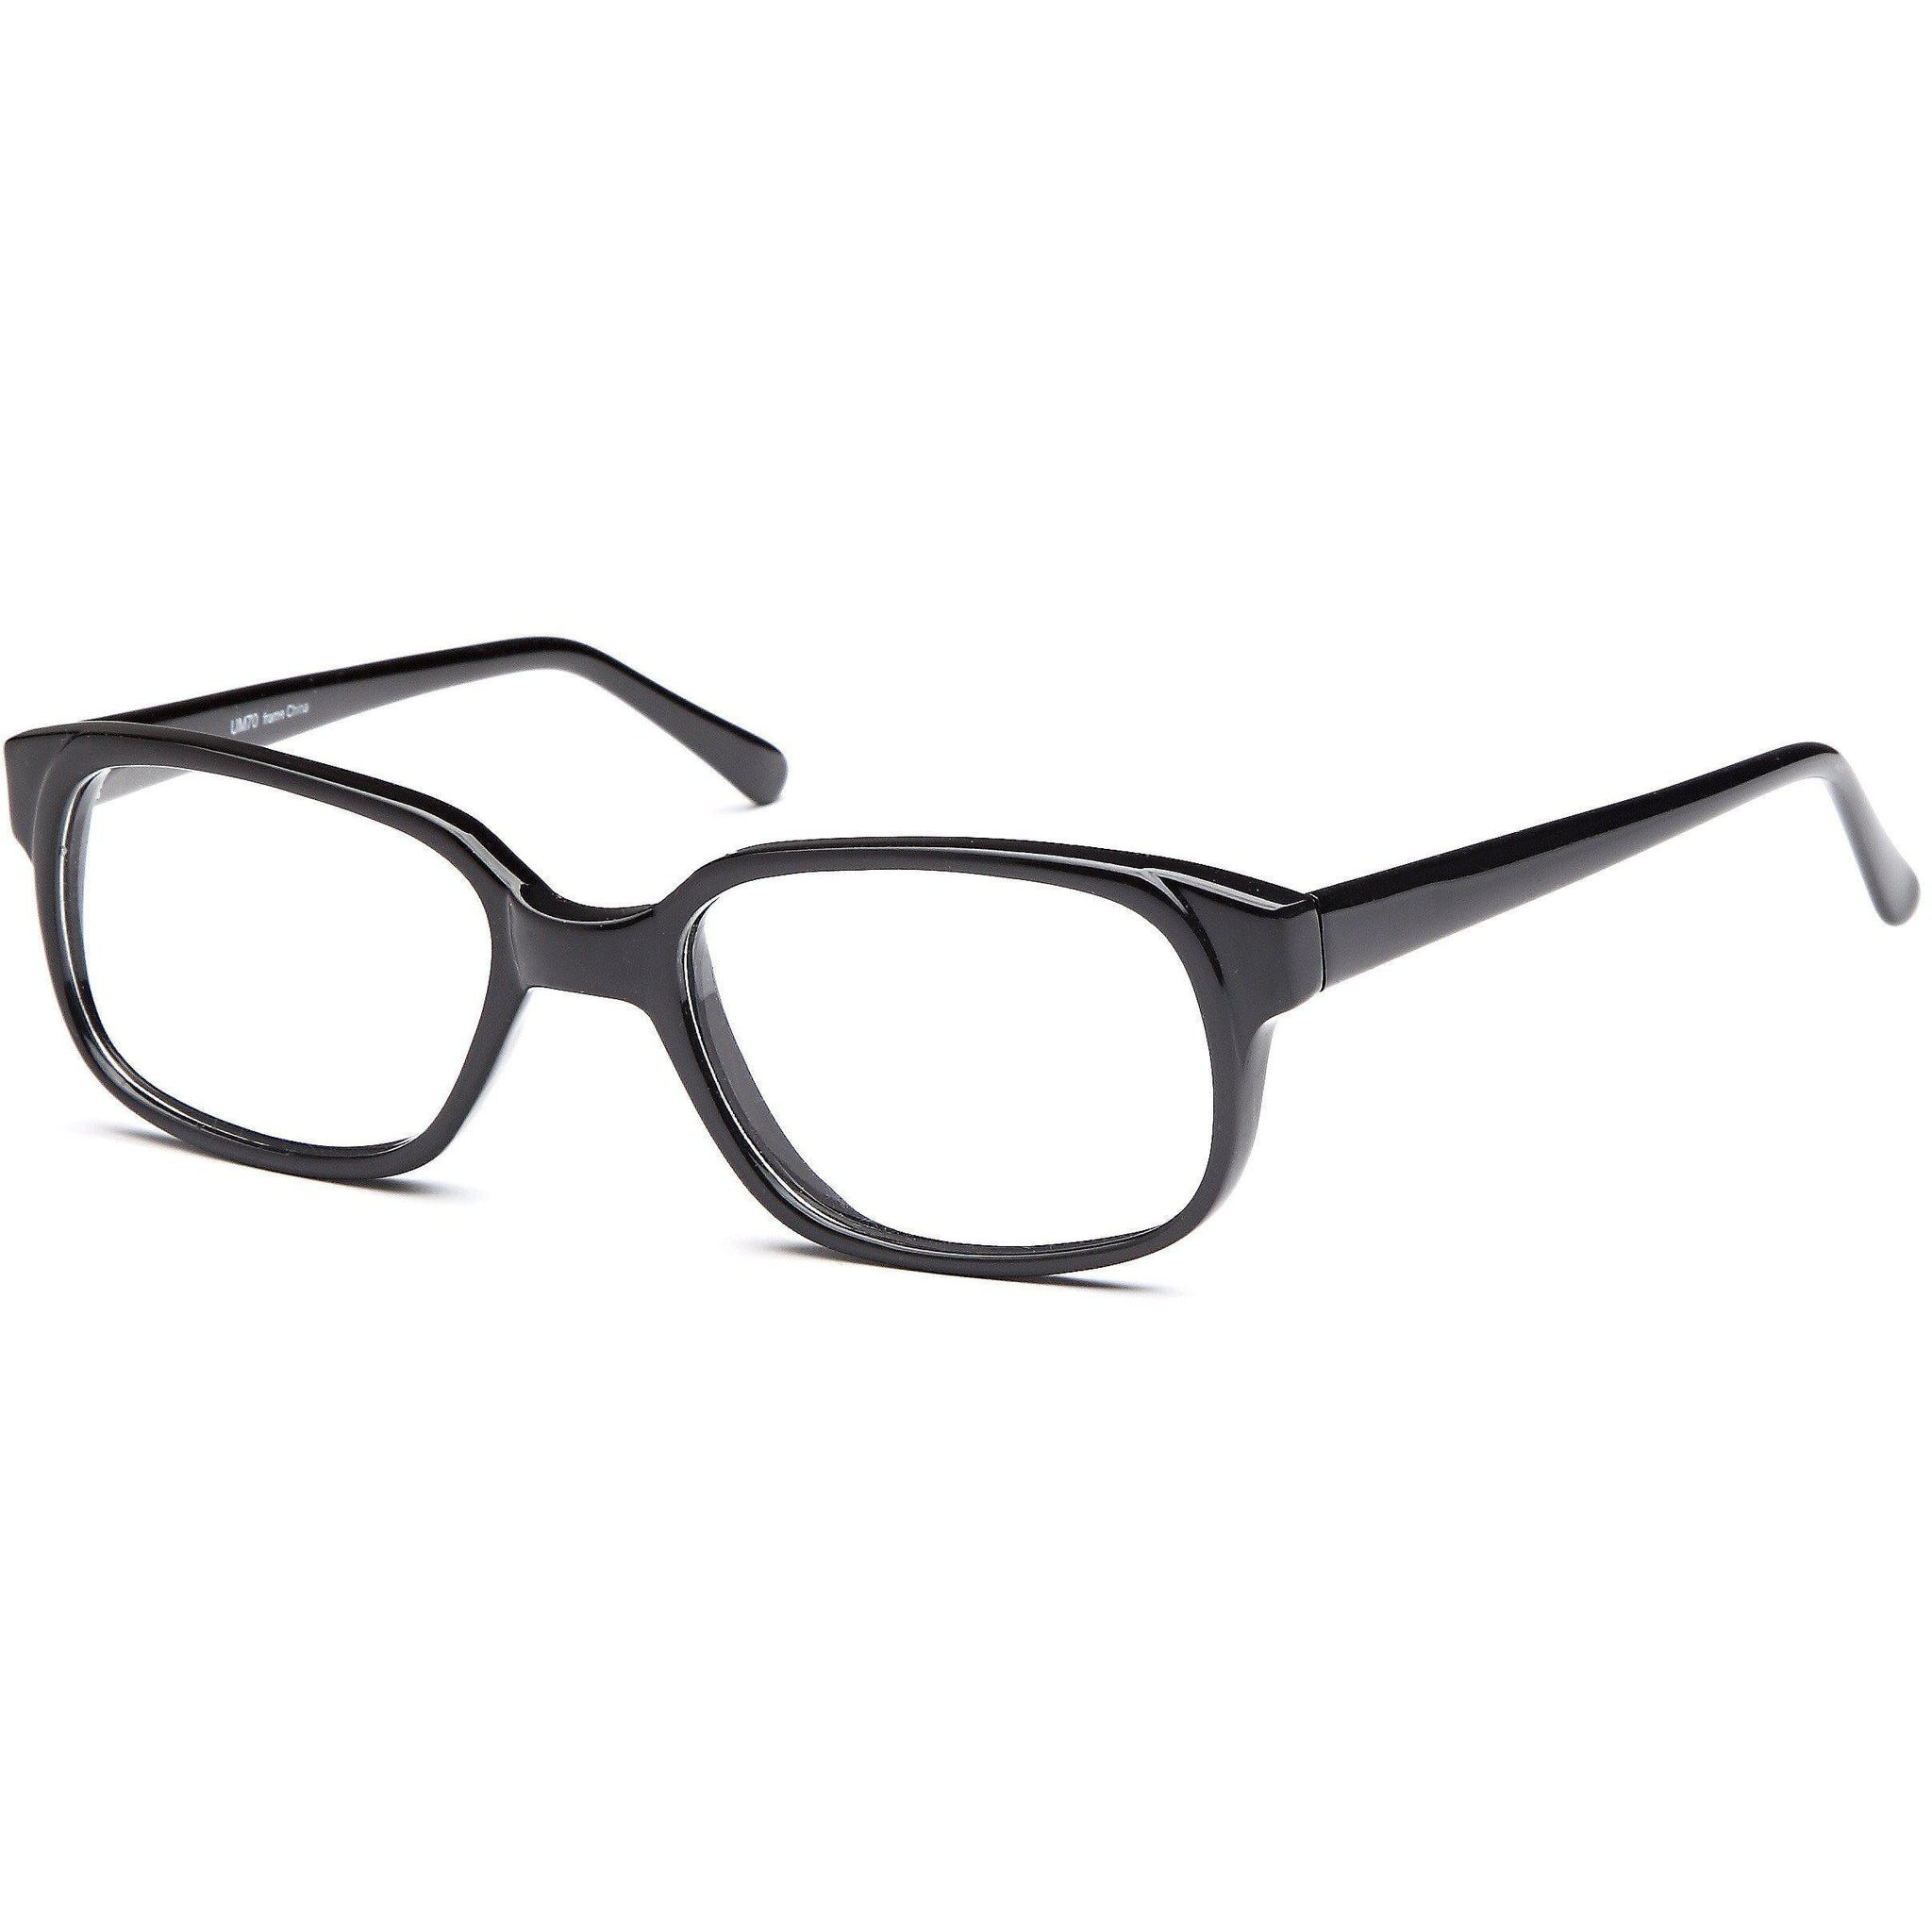 4U Prescription Glasses UM 70 Optical Eyeglasses Frame - timetoshade